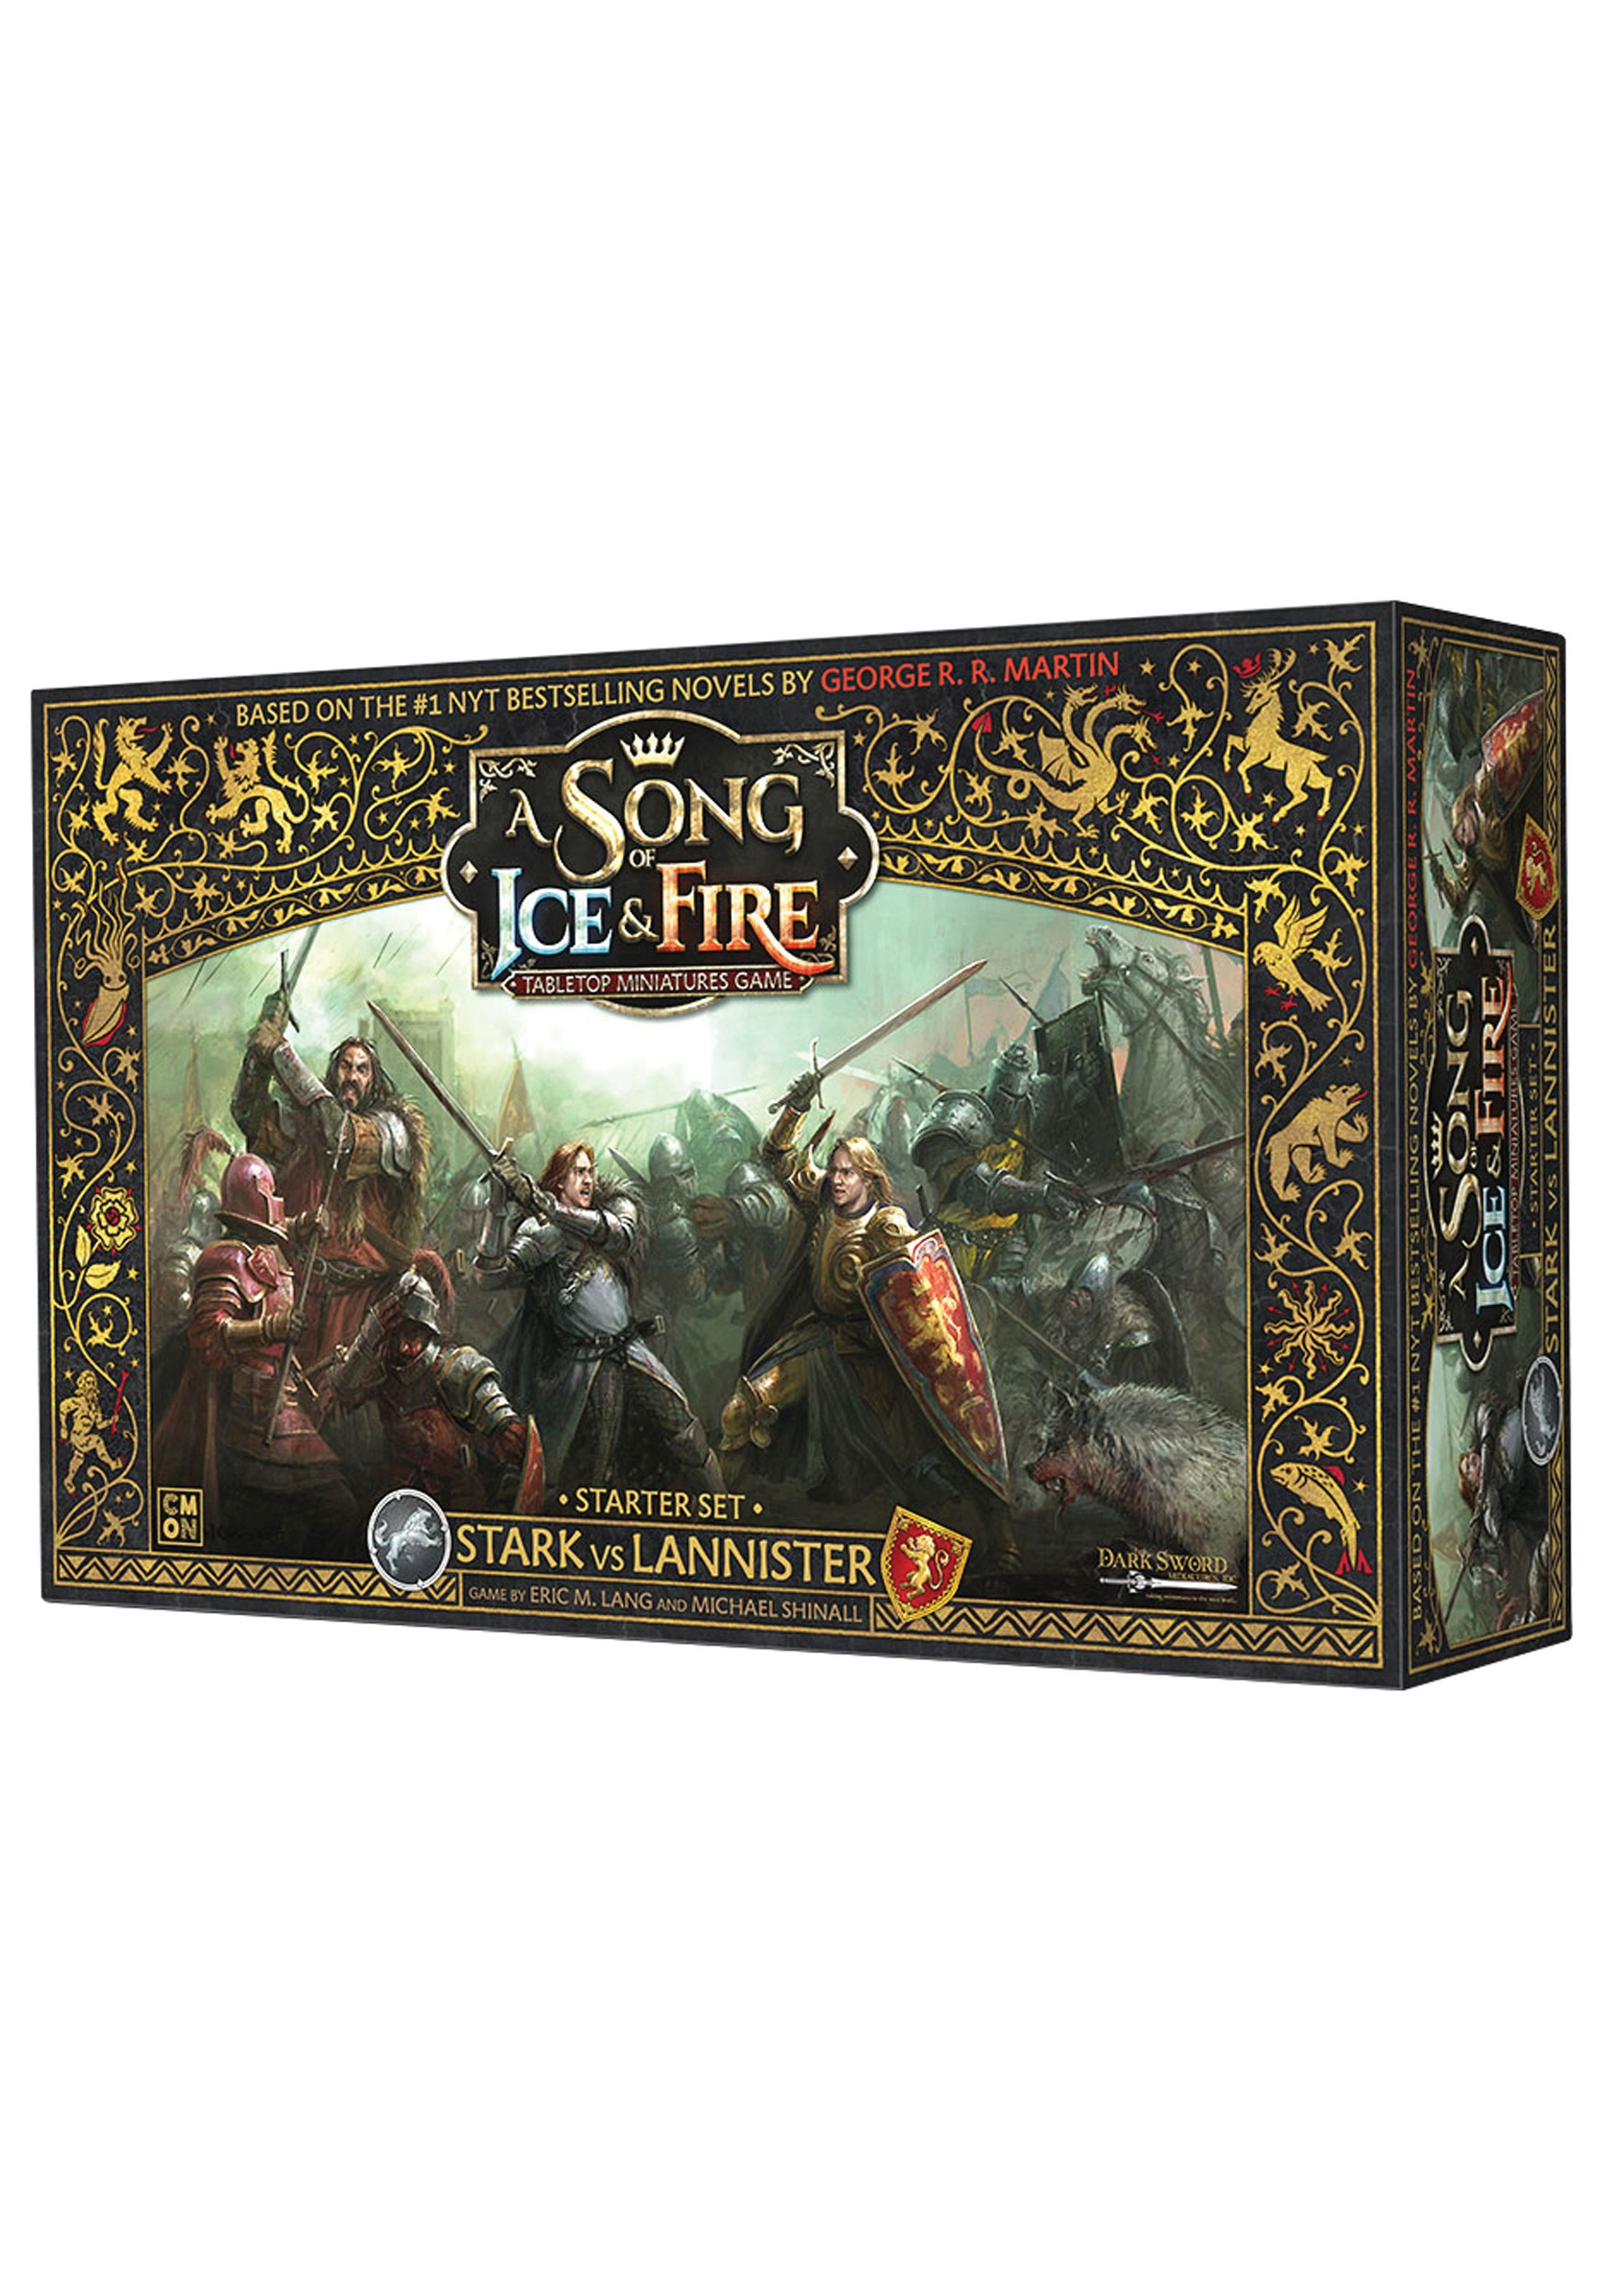 A_Song_of_Ice_&_Fire_Tabletop_Miniatures_Game_Starter_Set